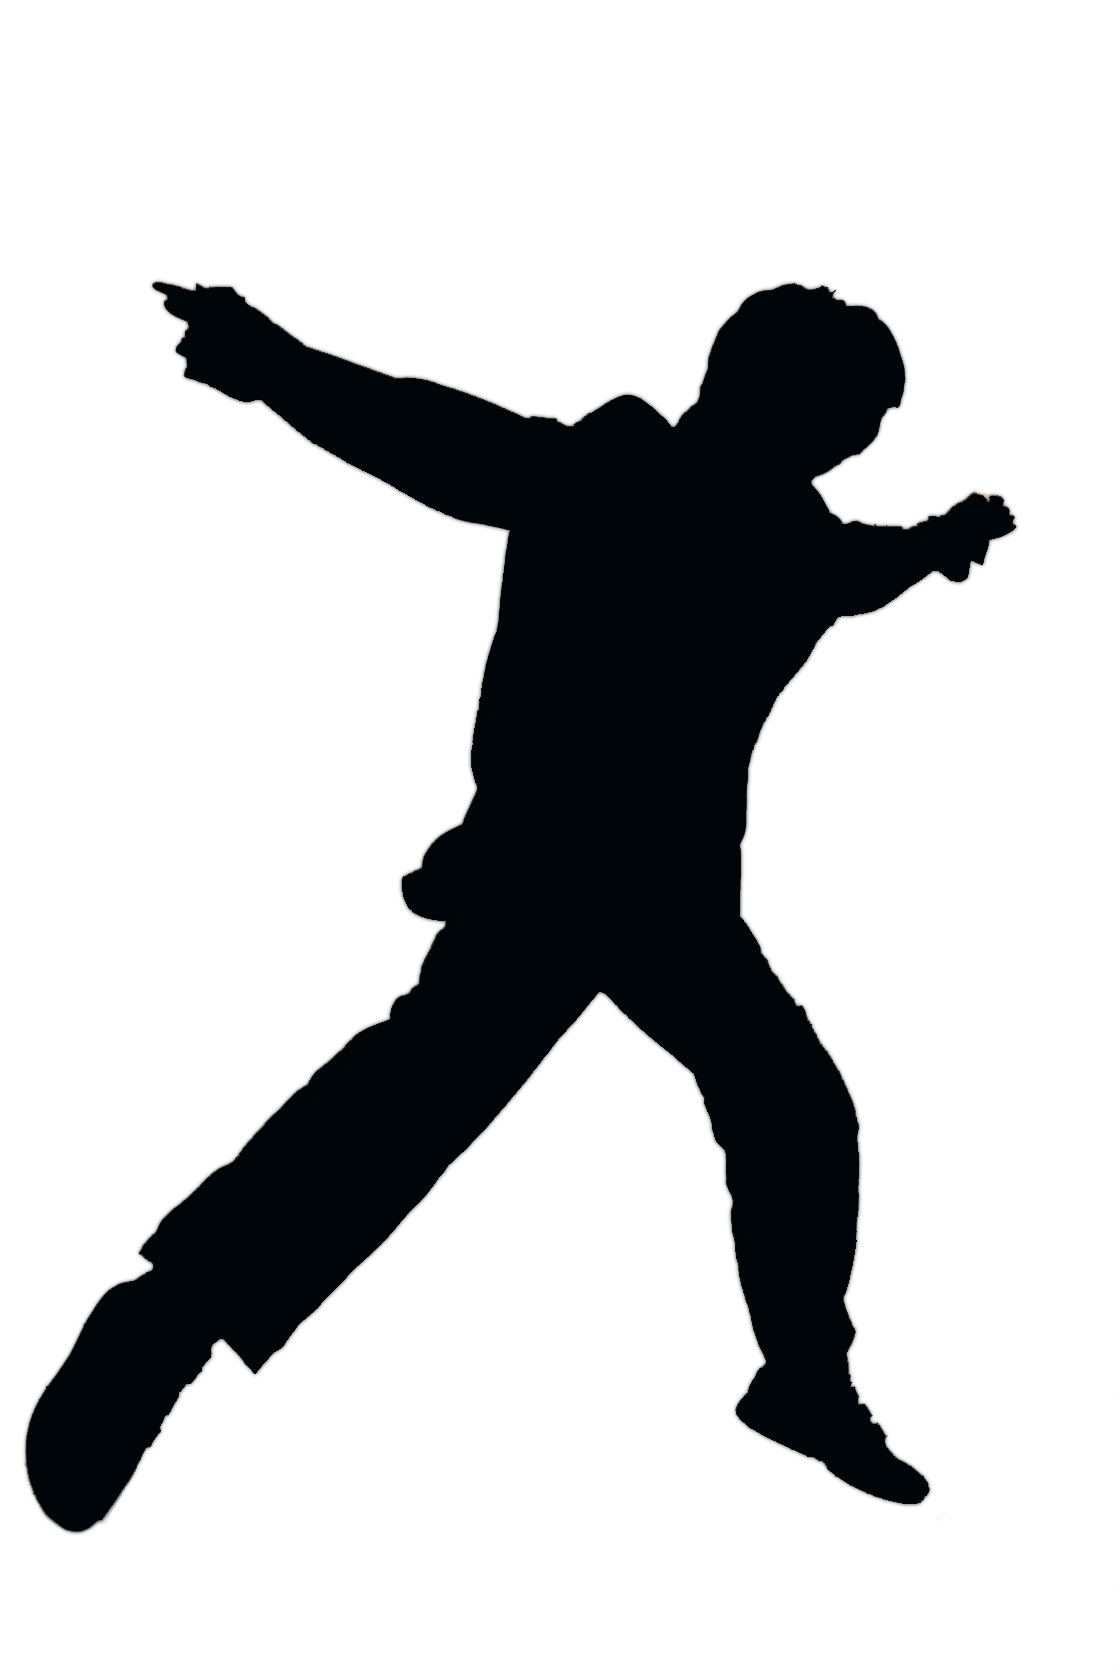 1119x1672 Change Inc. Jumping Silhouette